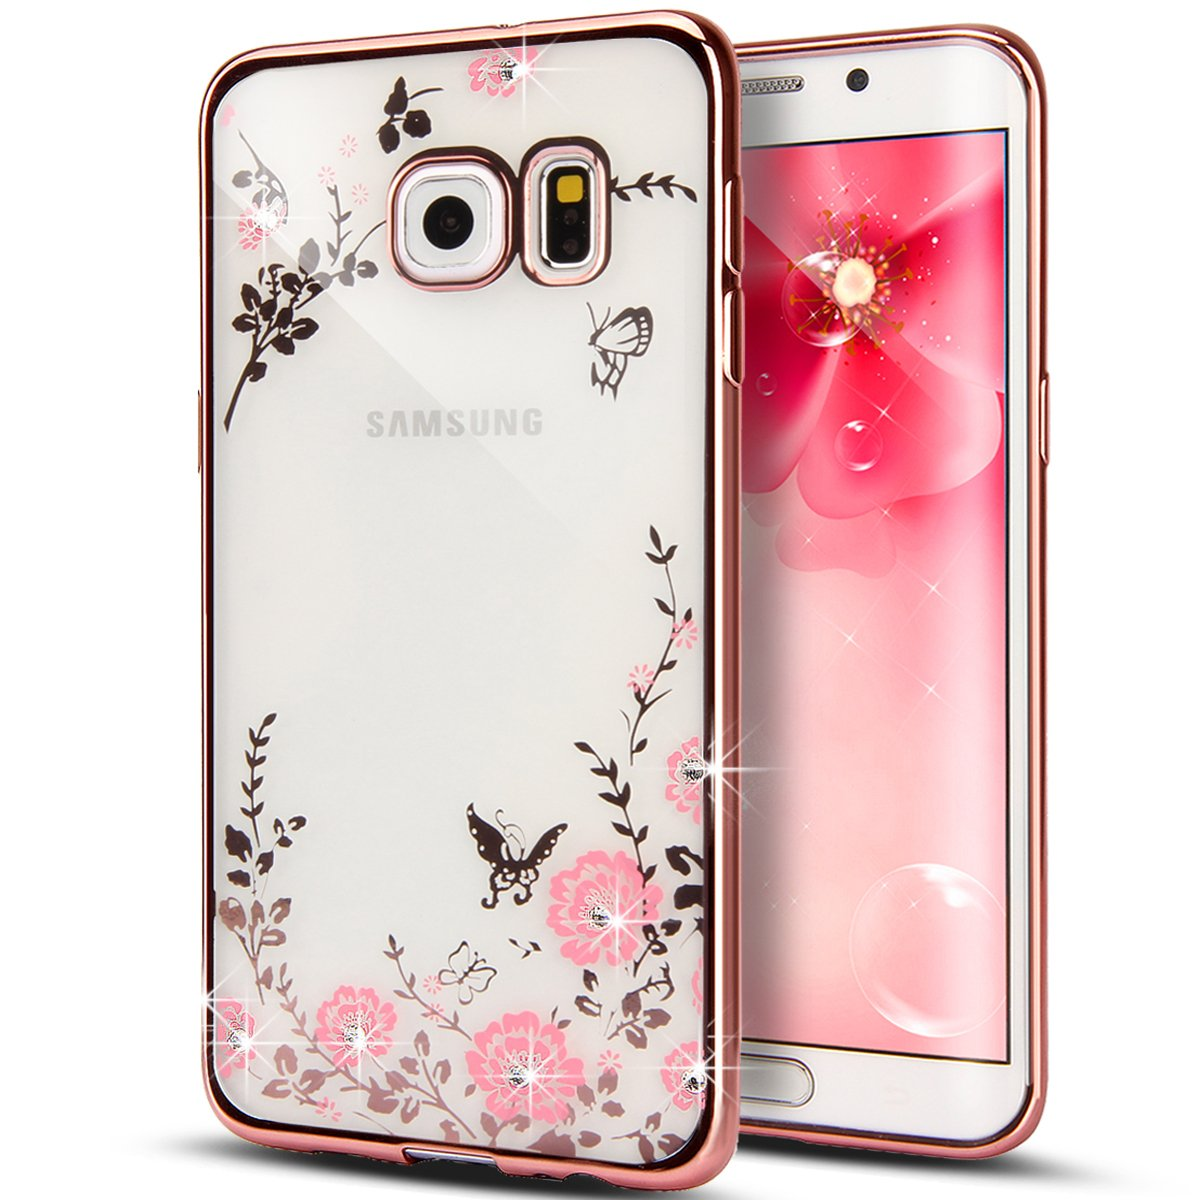 Galaxy S6 Edge Case,NSSTAR Pink Butterfly Floral Flower Bling Crystal Rhinestone Diamonds Clear Rubber Rose Plating Frame Soft TPU Silicone Protective Bumper Case Cover for Samsung Galaxy S6 Edge